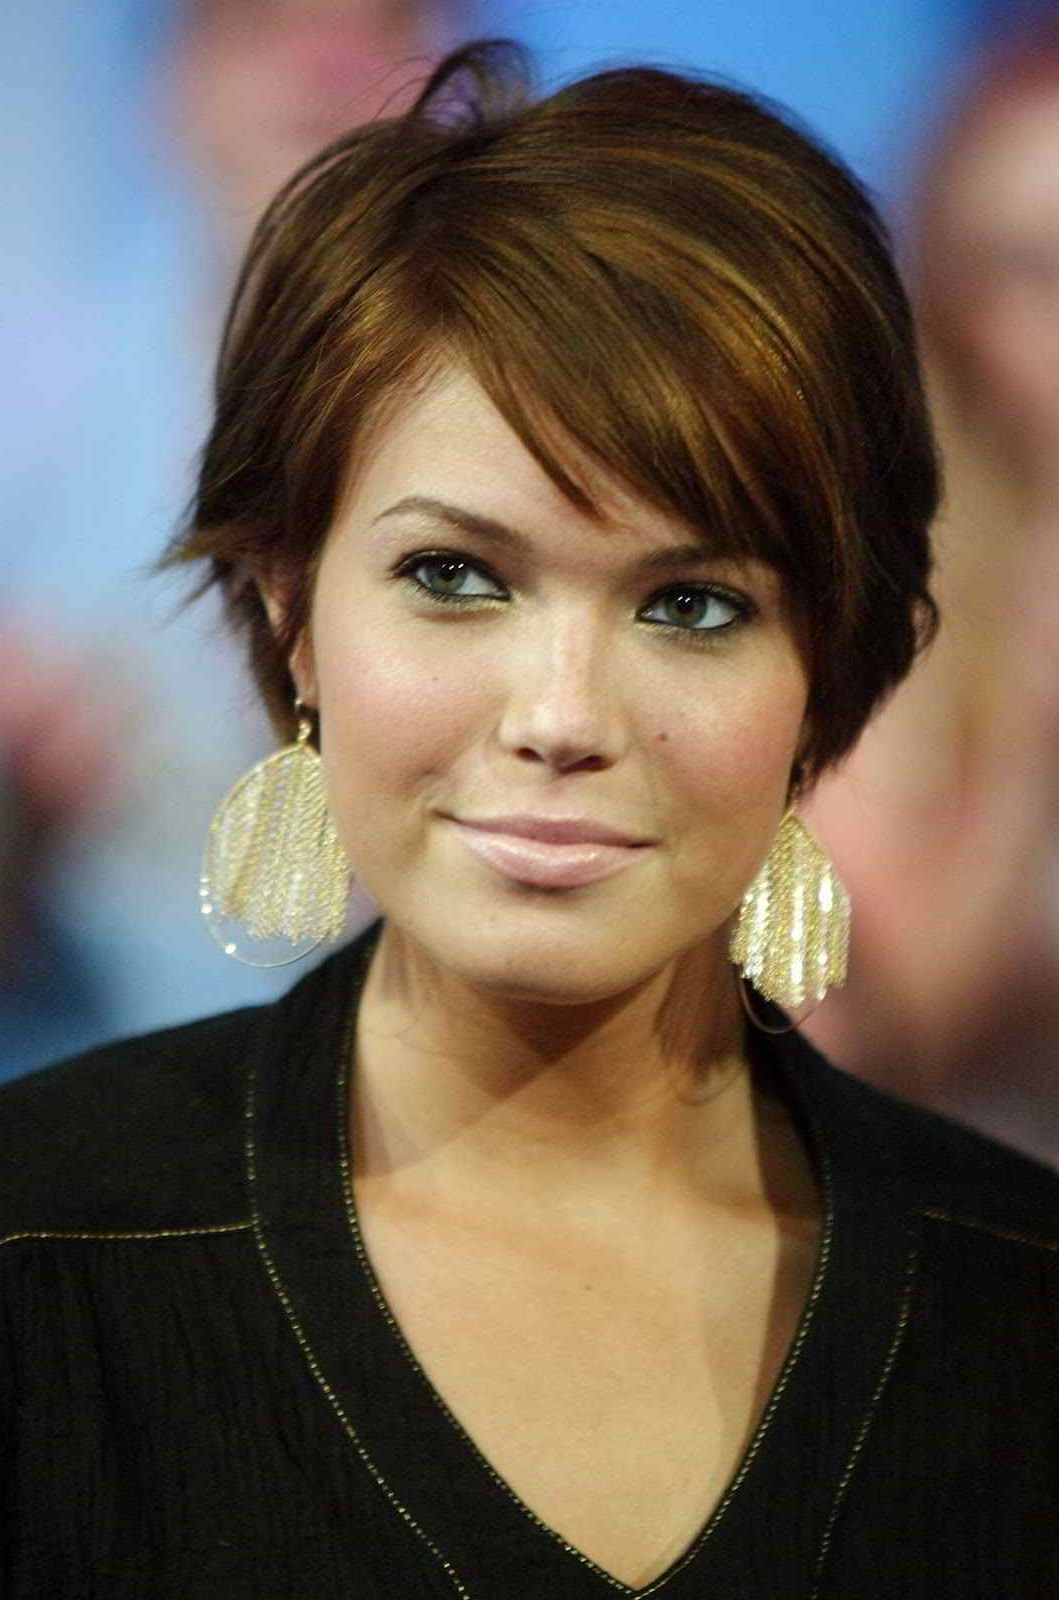 Hairstyles With Height And Fullness At The Crown – Google Search Intended For Preferred Layered Haircuts With Cropped Locks On The Crown (View 11 of 20)